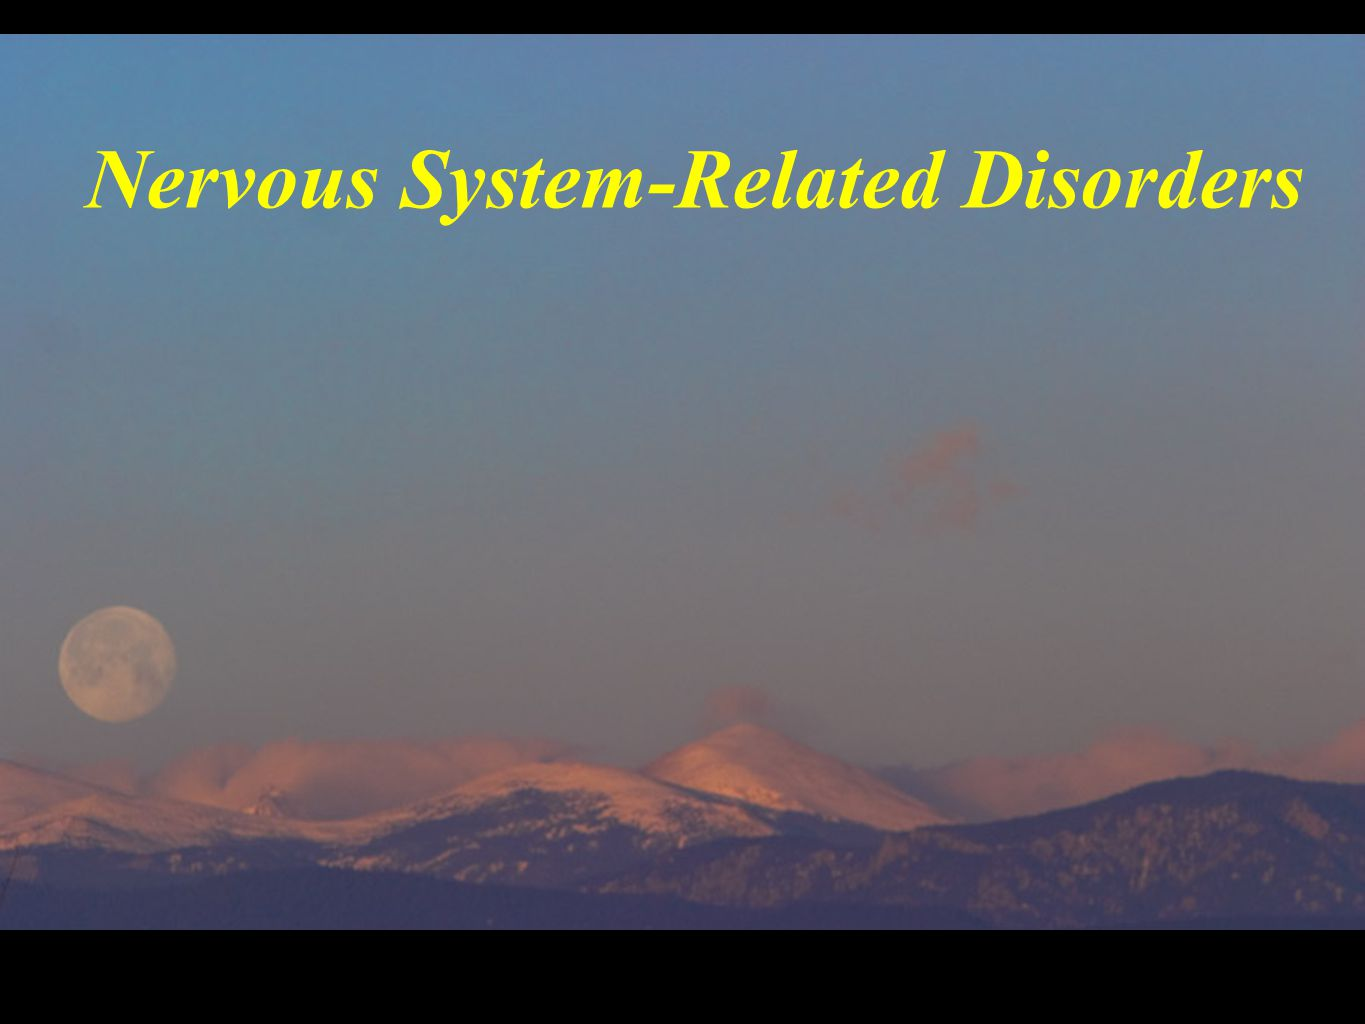 Nervous System-Related Disorders